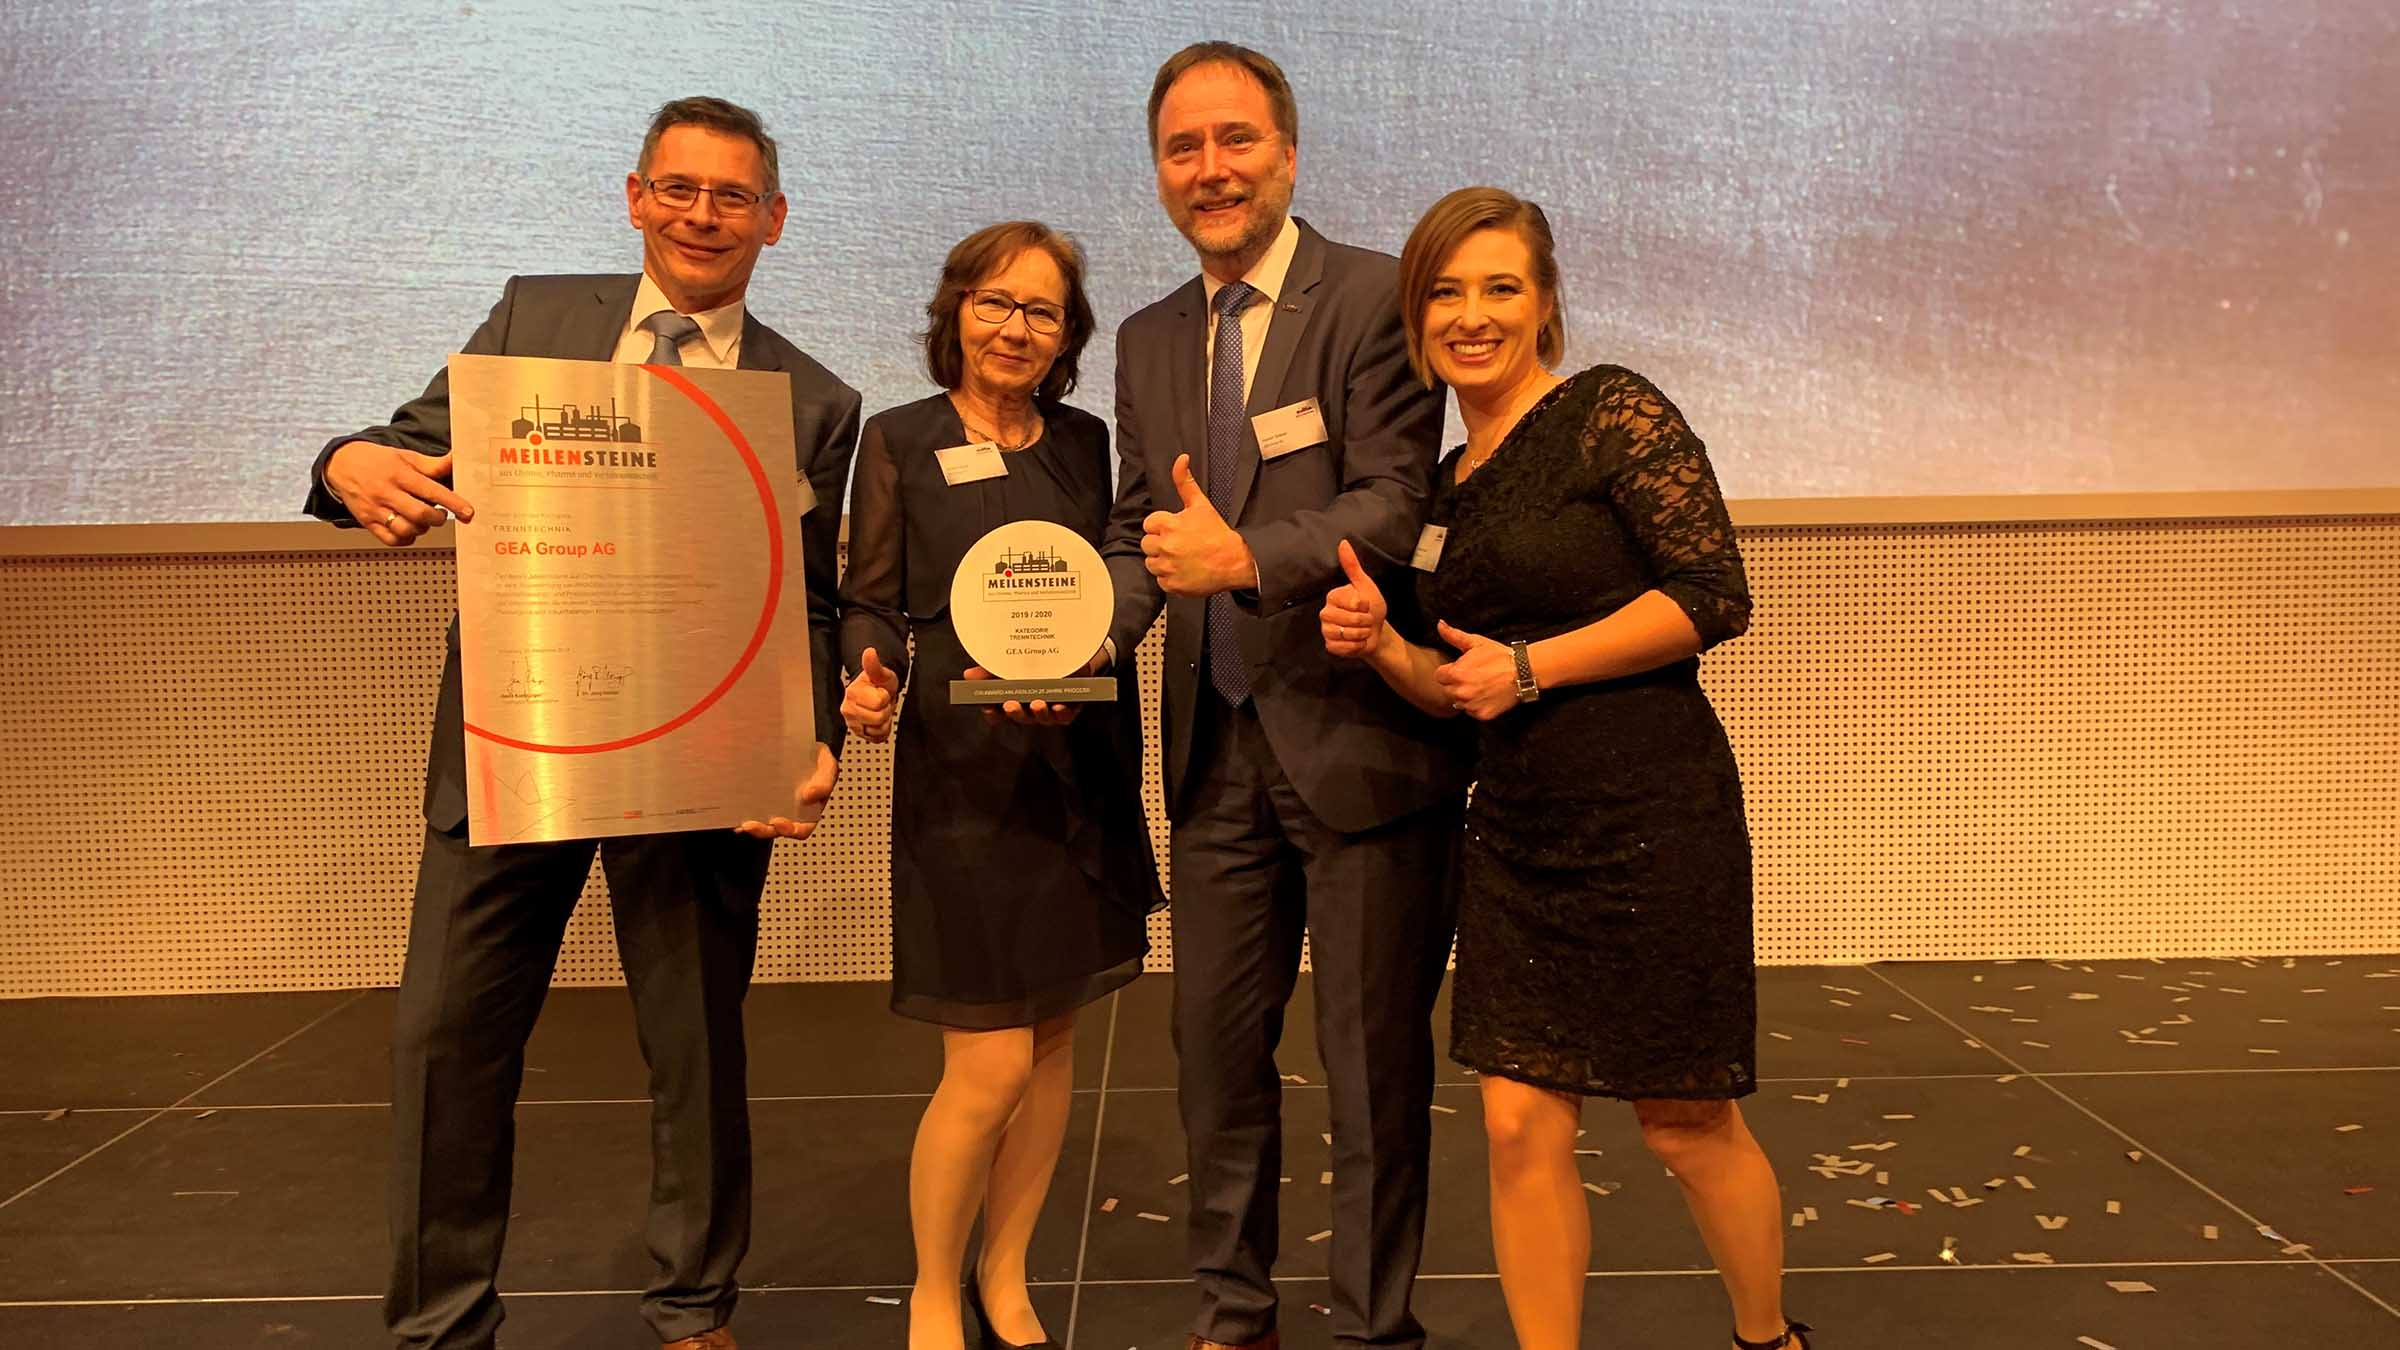 The GEA delegation at the award ceremony in Augsburg with Alexander Lange, Andrea Heuser, Norbert Strieder and Katharina Schulz are delighted with the award from GEA. (Photo: GEA)